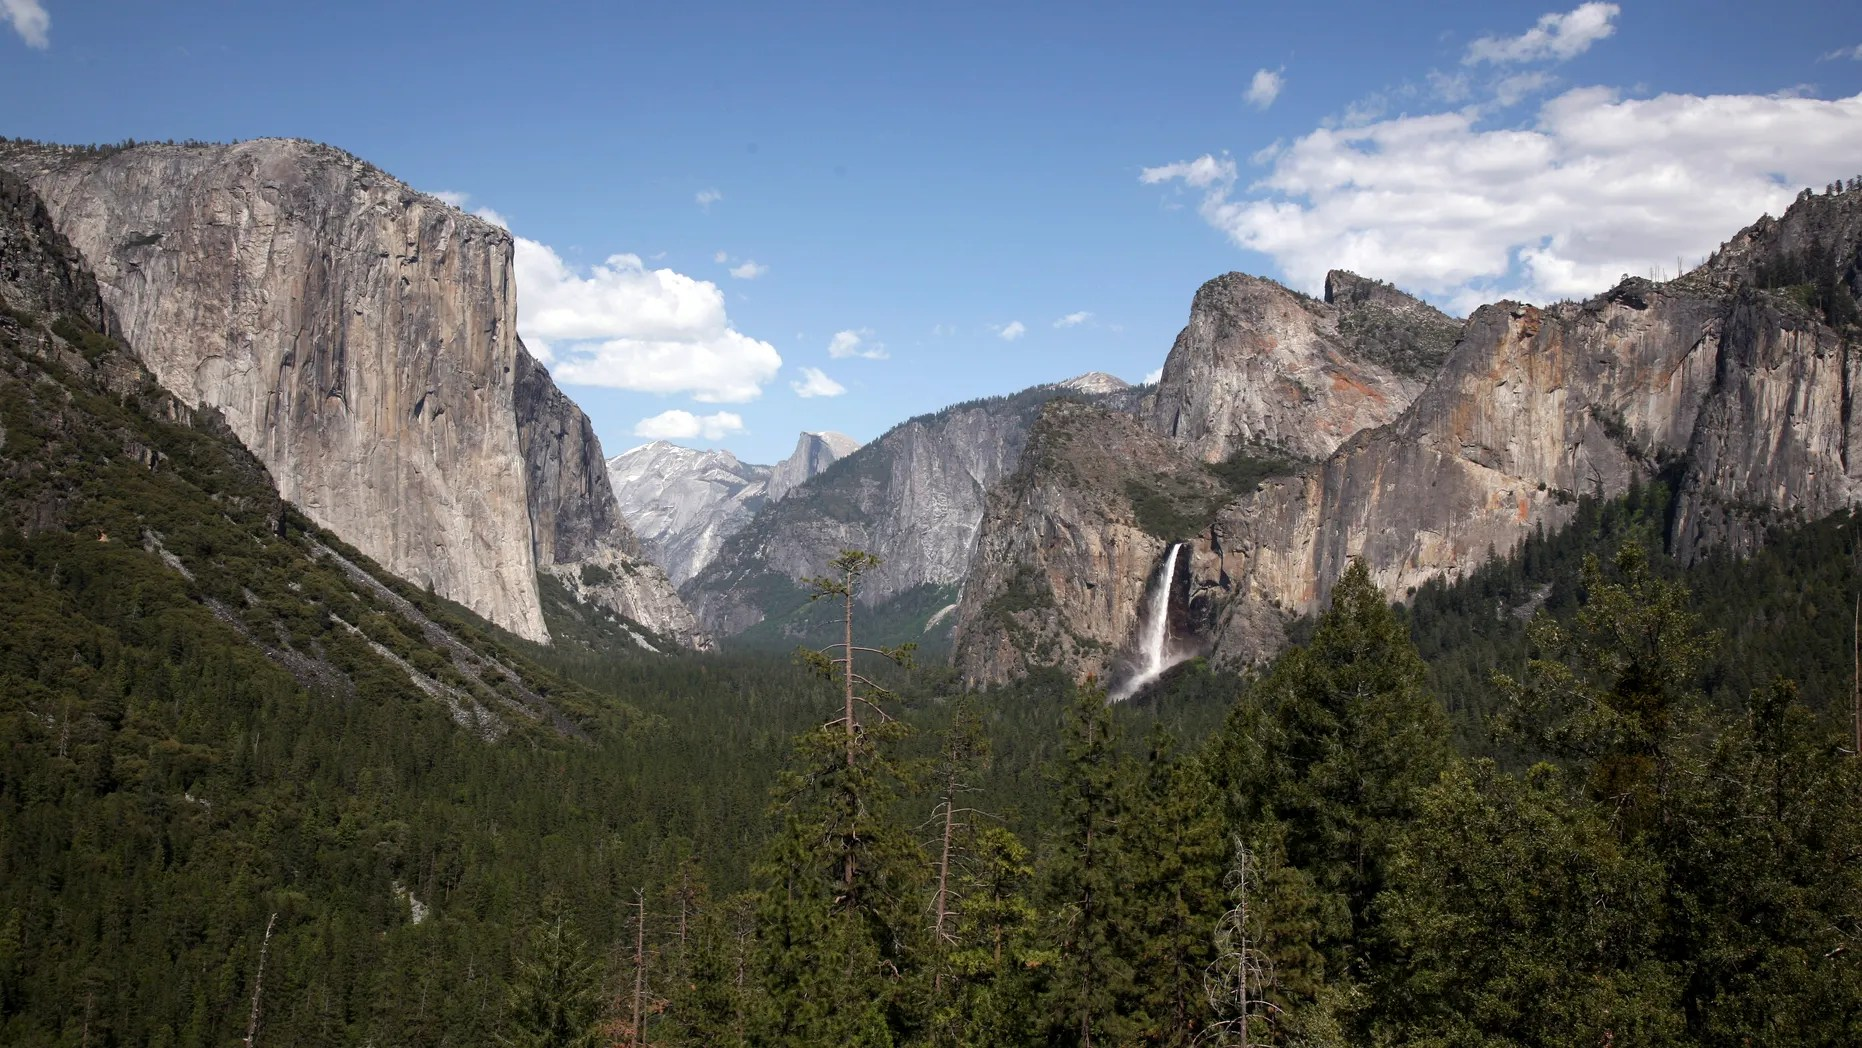 Yosemite hantavirus outbreak may offer clues to rare disease | Fox ...